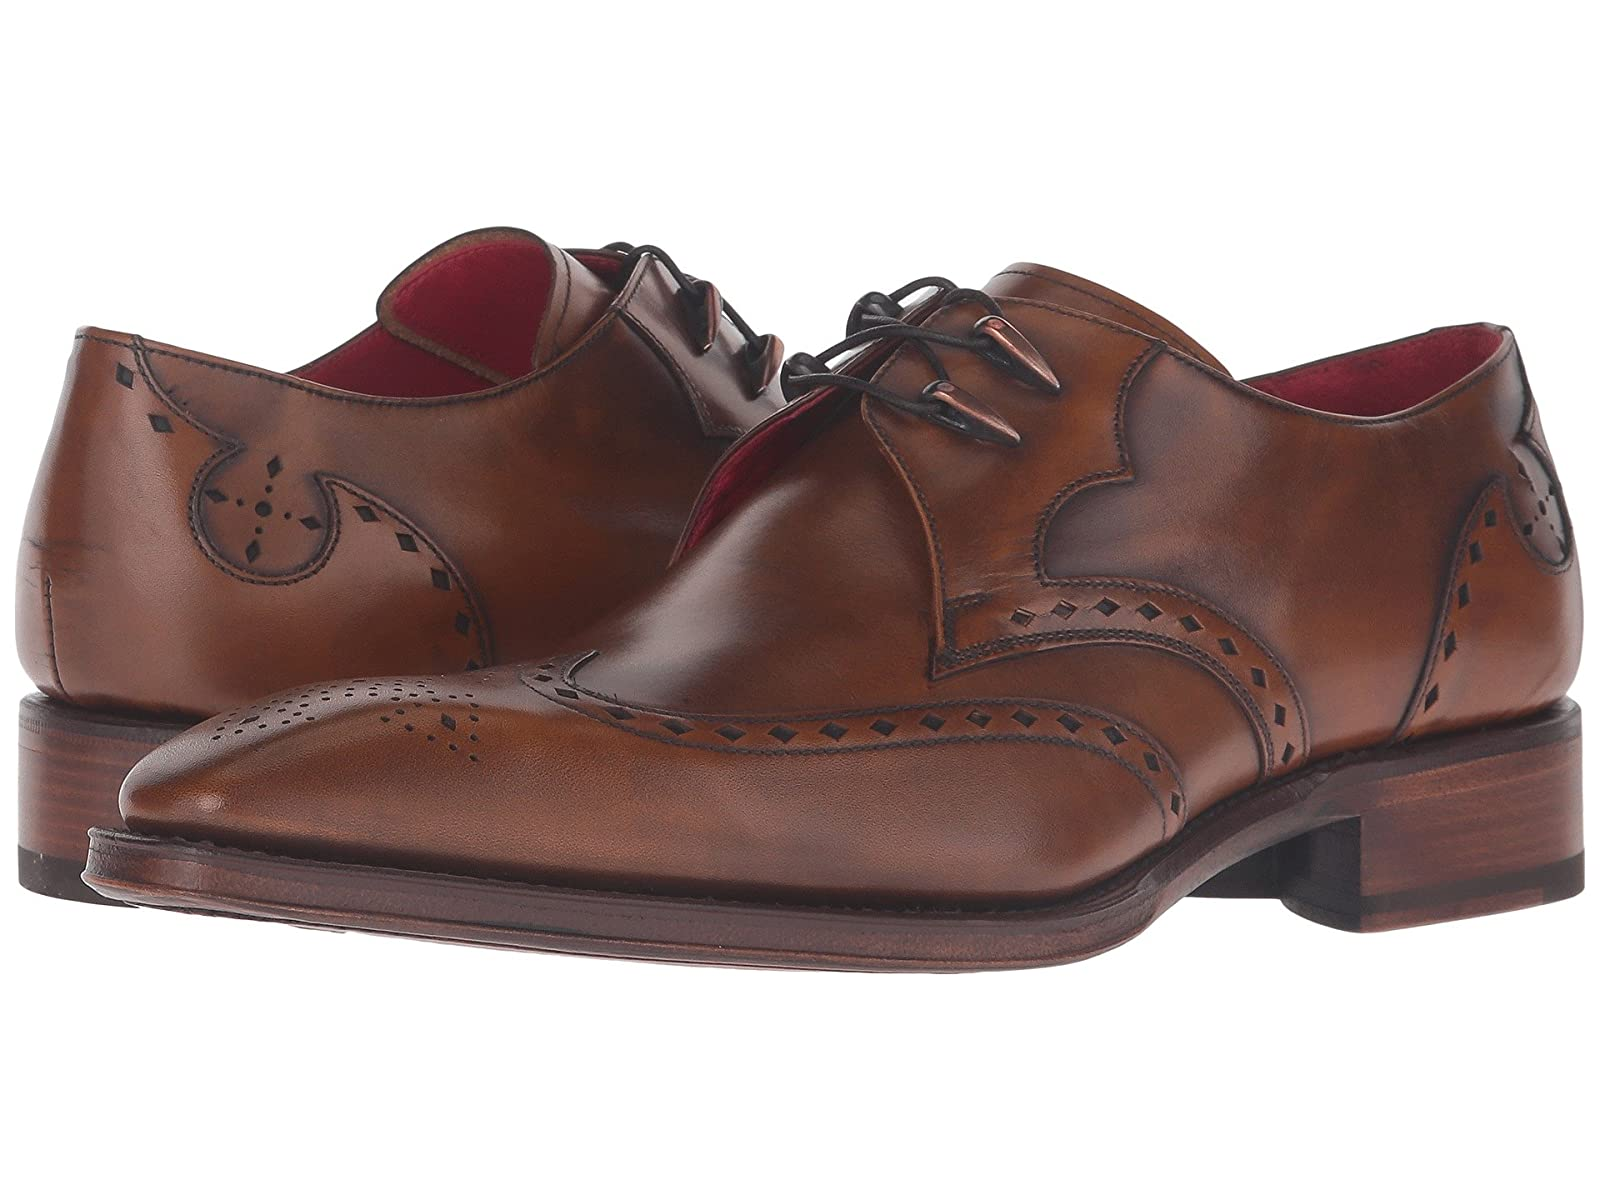 Jeffery-West Amityville-Wing GibsonCheap and distinctive eye-catching shoes